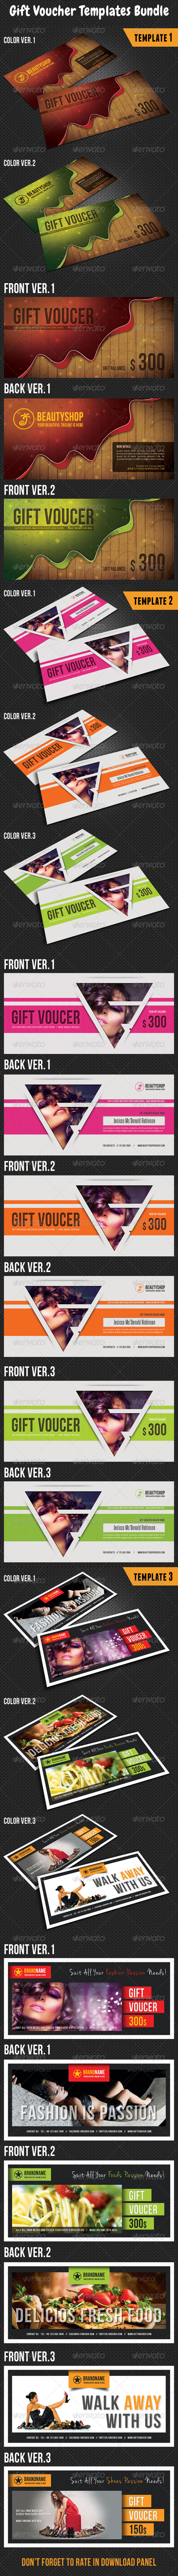 GraphicRiver Gift Voucher Templates Bundle 02 8198906